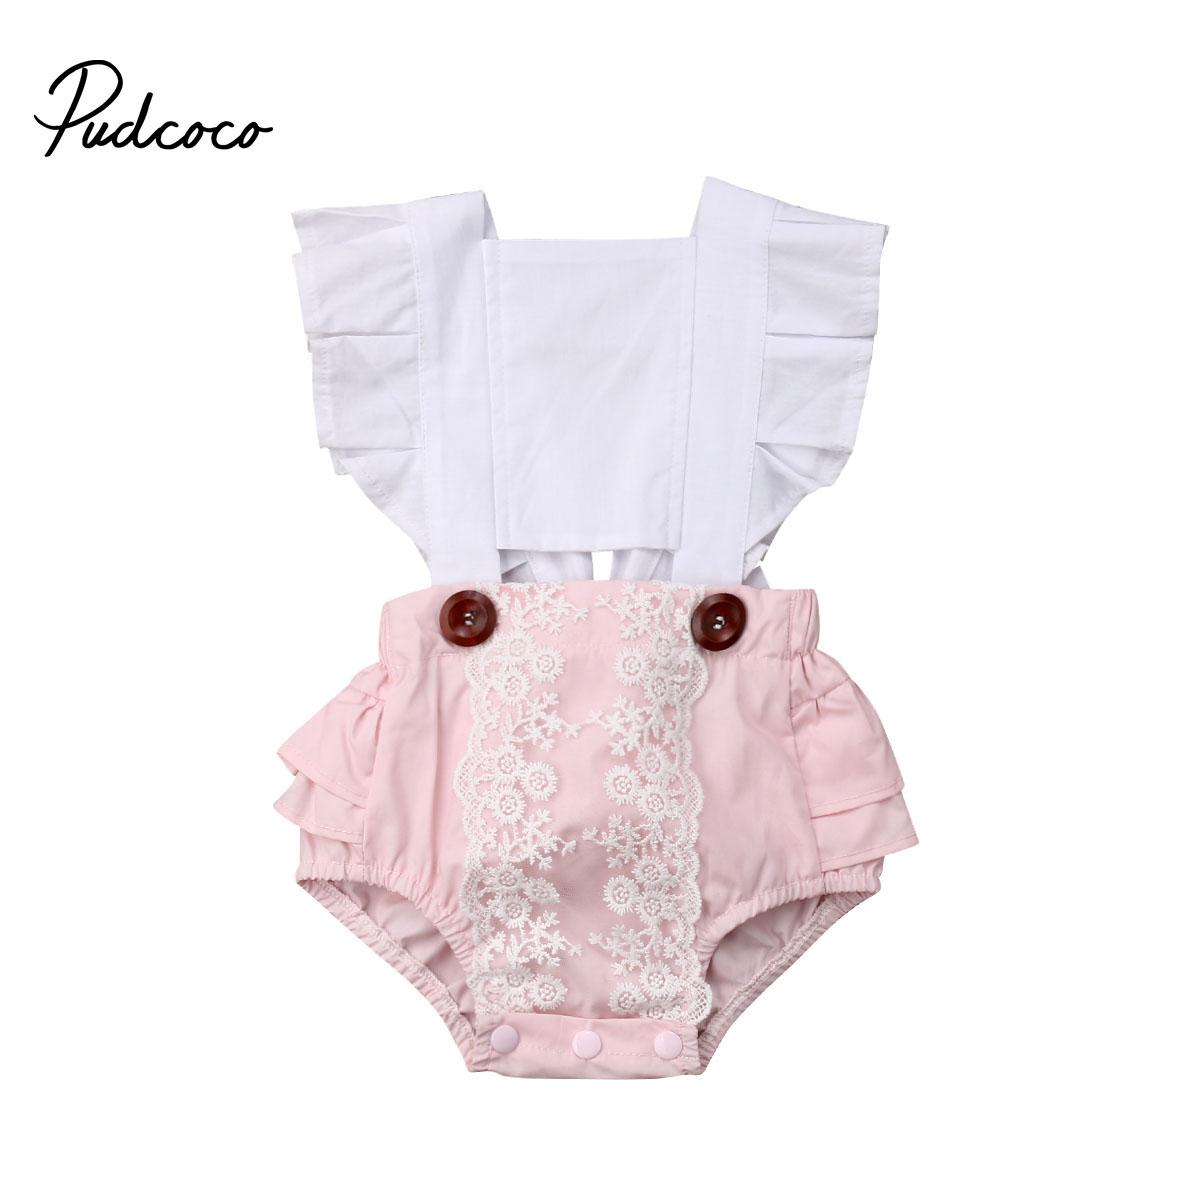 2019 Baby Girl Summer Clothing Lace Dot Flower Backless Romper Jumpsuit  Outfits For Newborn  Clothes Children Kid Toddler